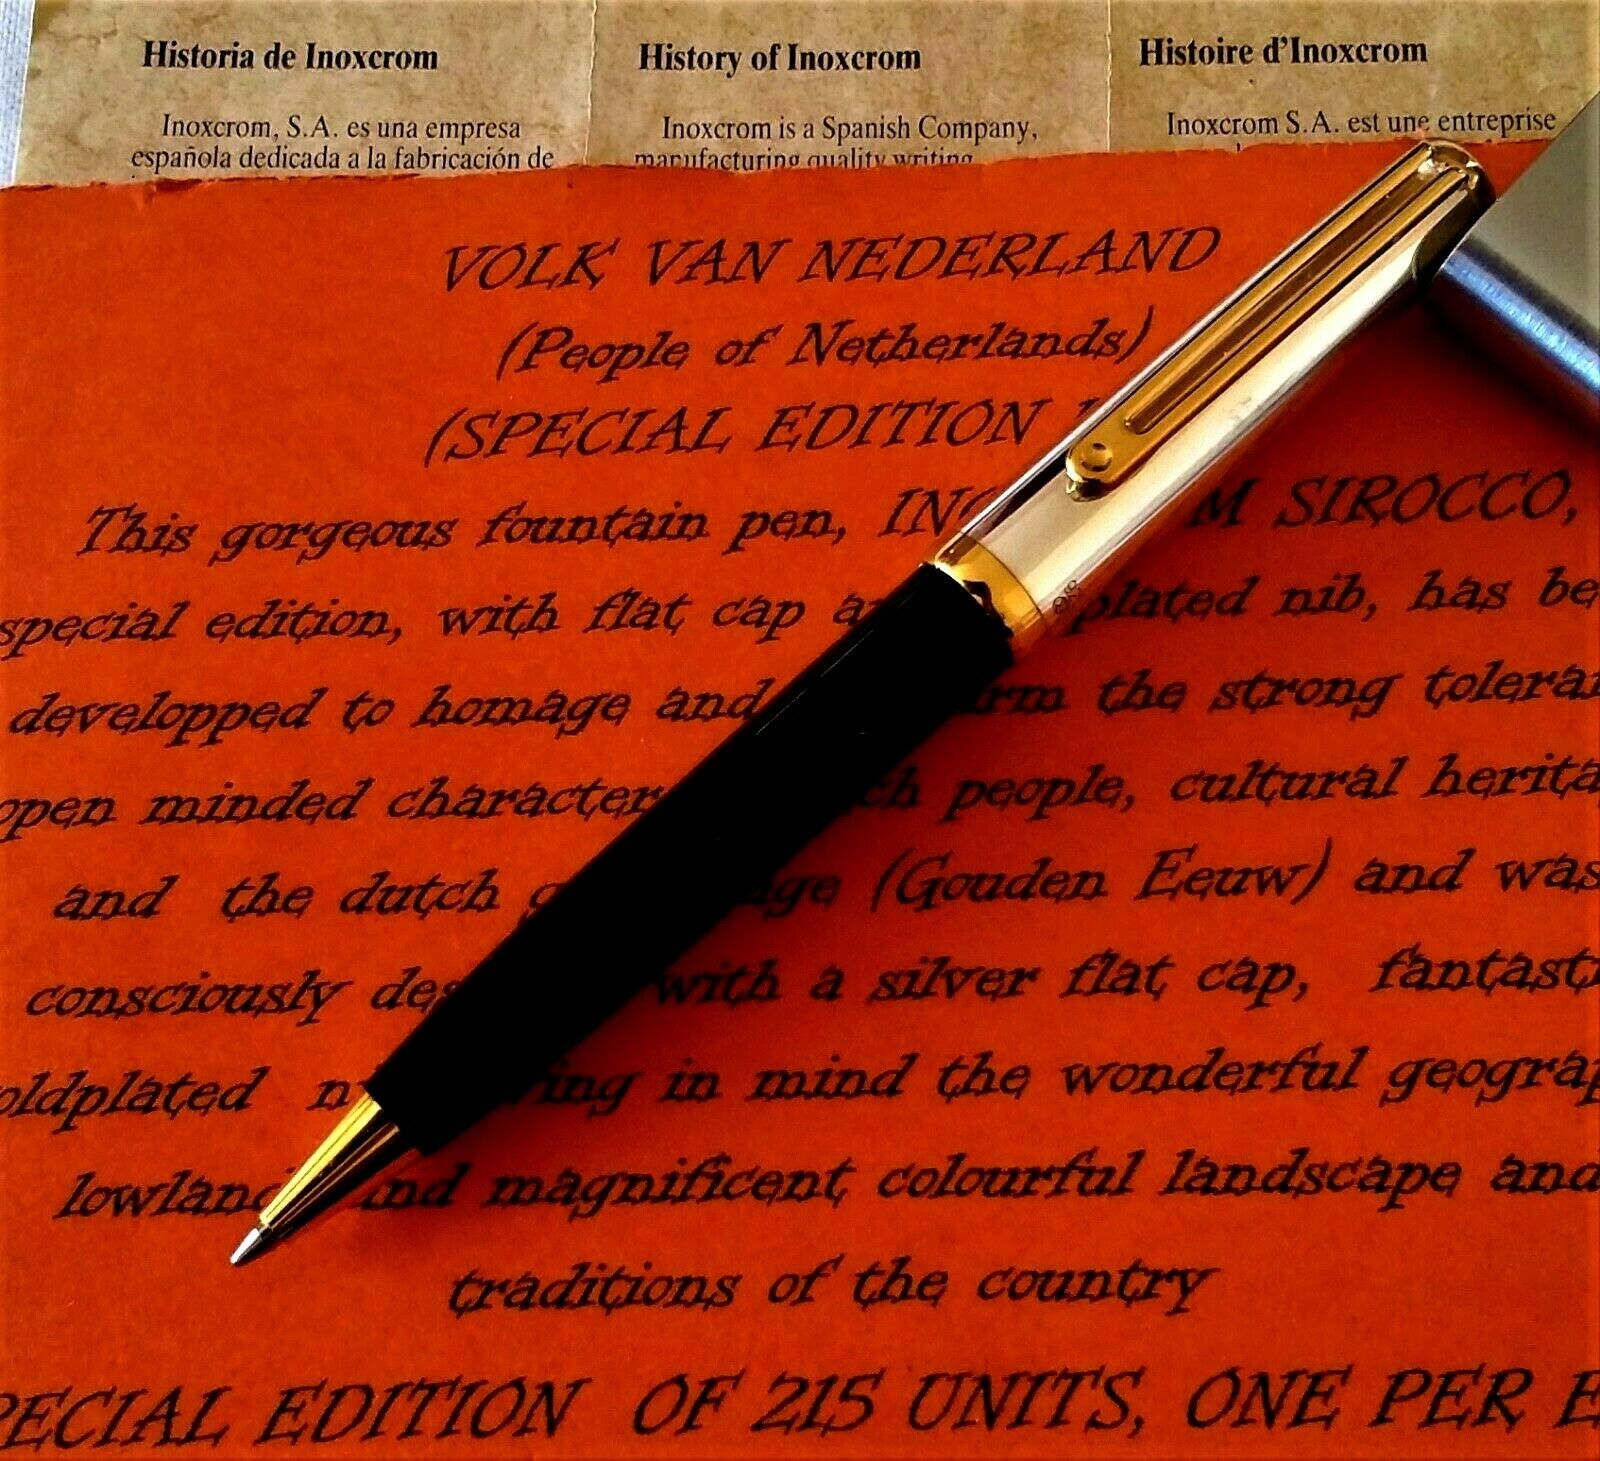 INOXCROM SIROCCO SILVER SPANISH BALL POINT PEN